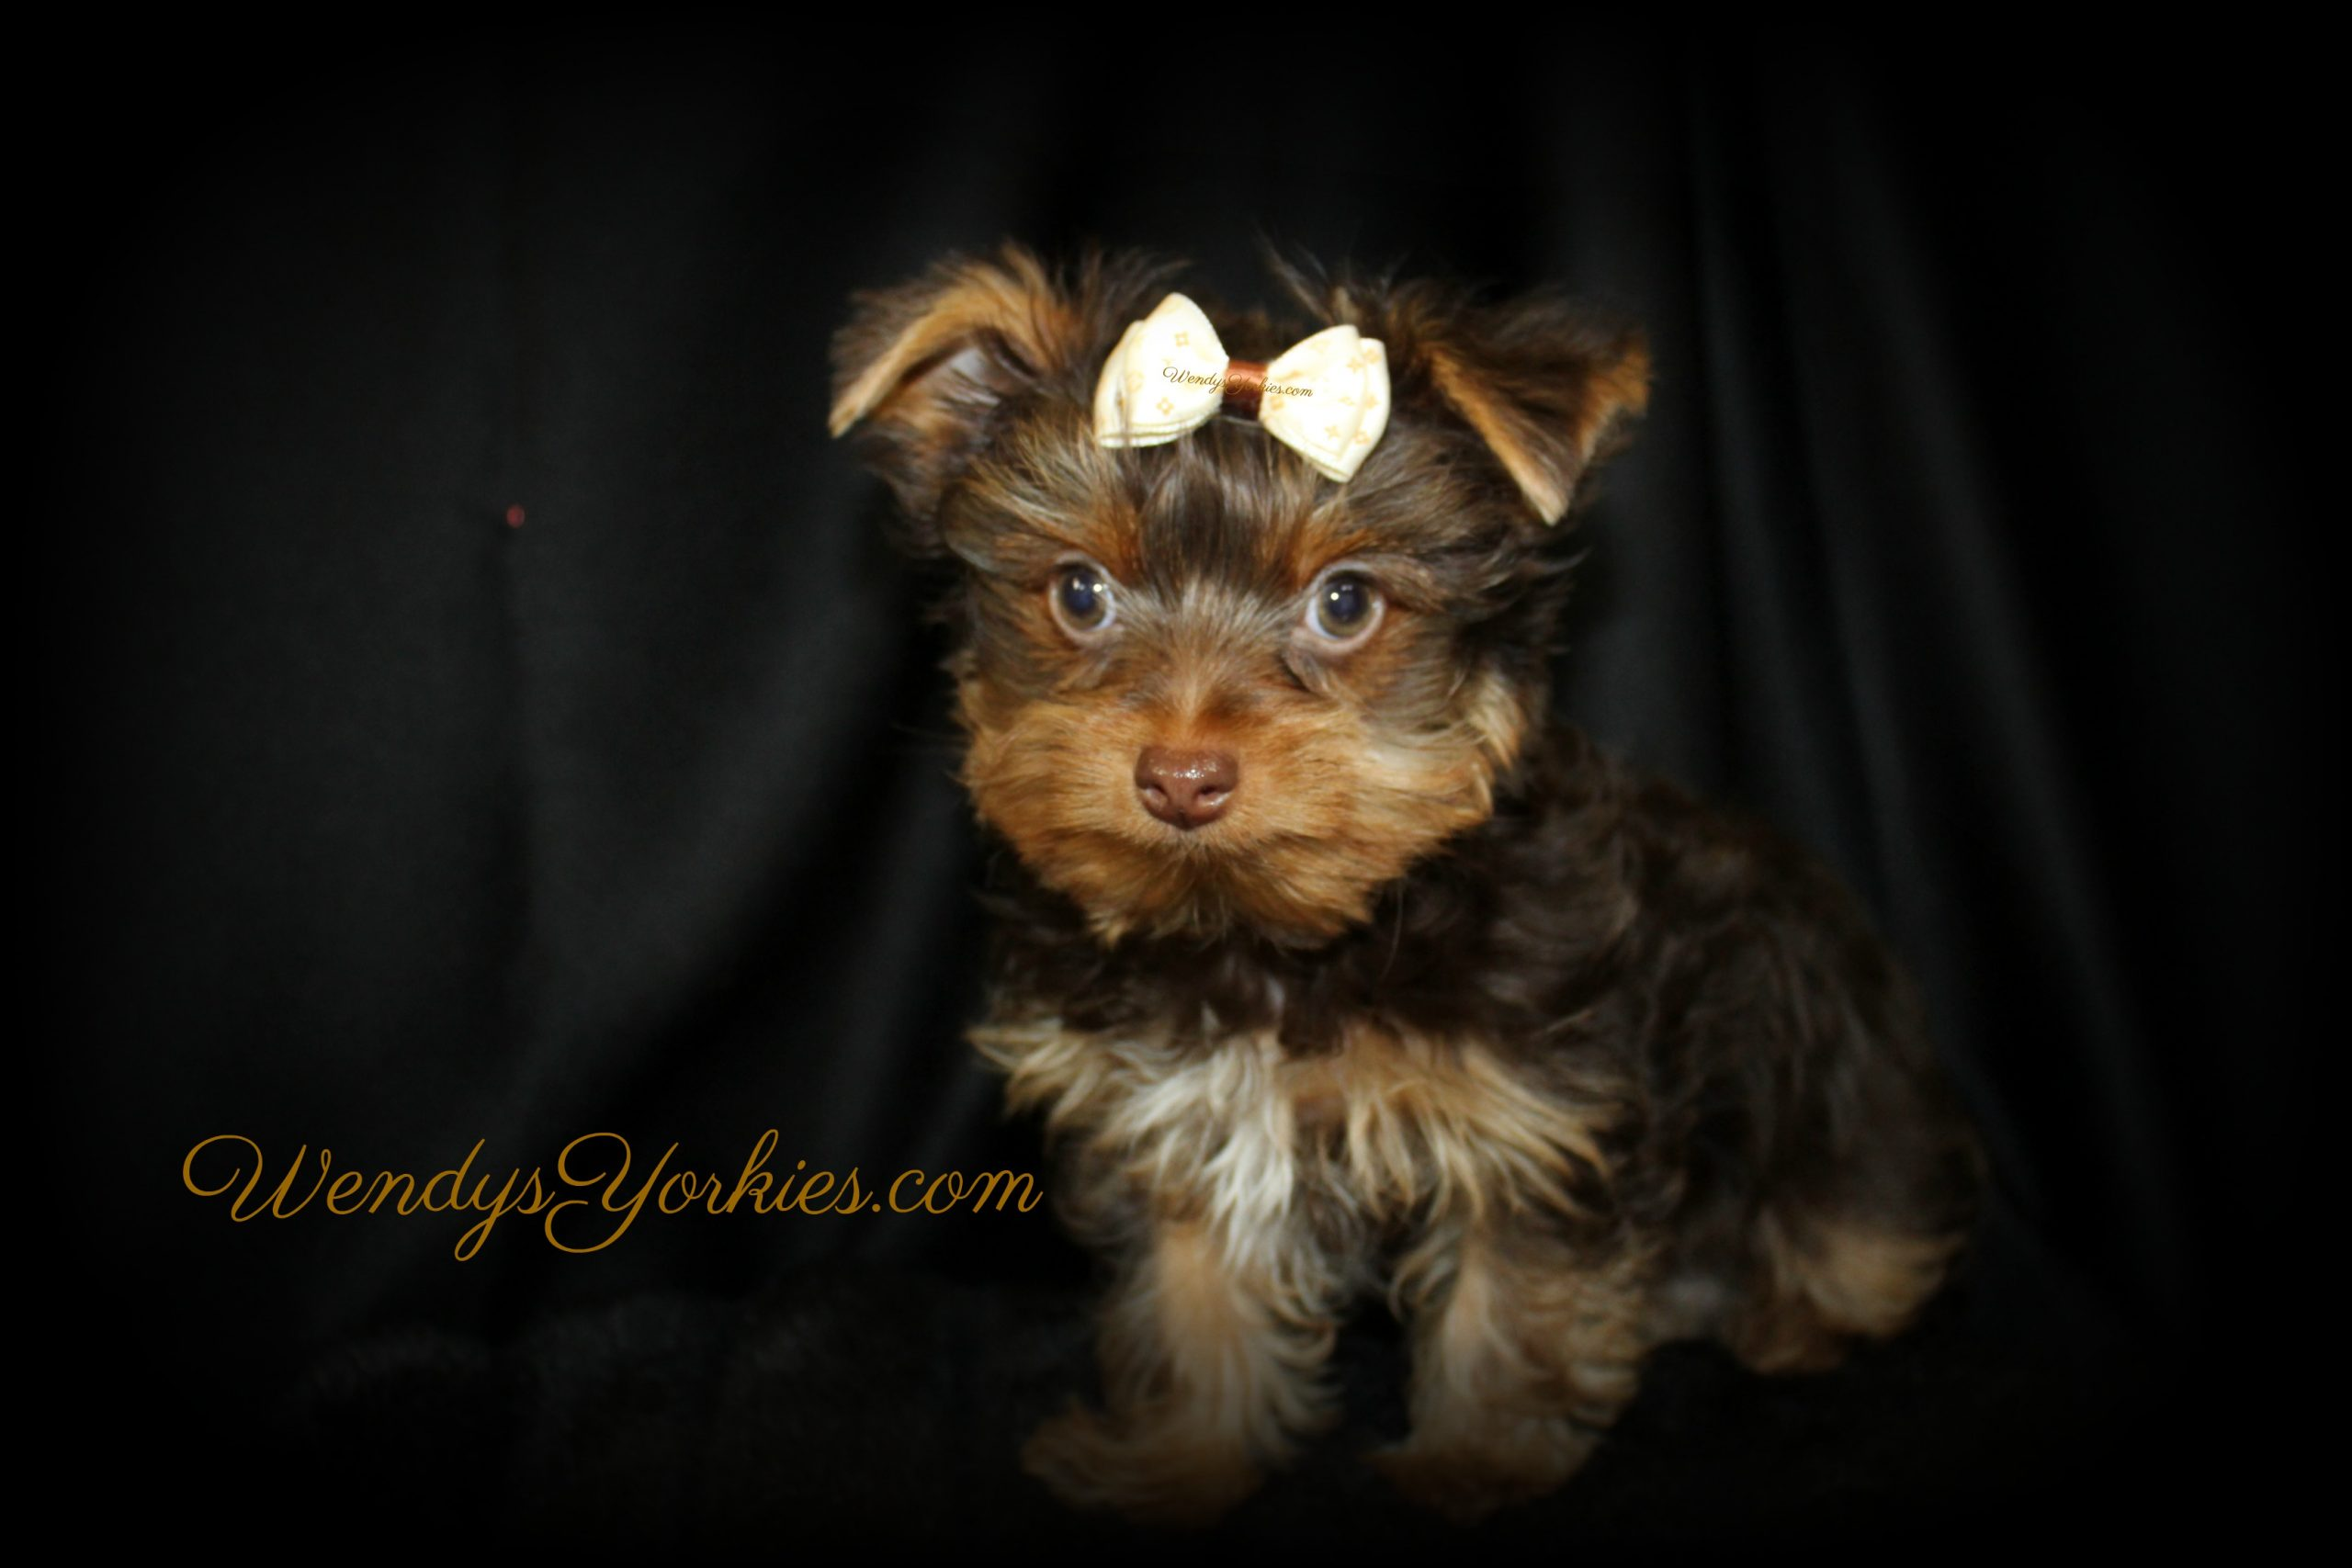 Chocolate Yorkie puppy for sale in Texas, WendysYorkies.com